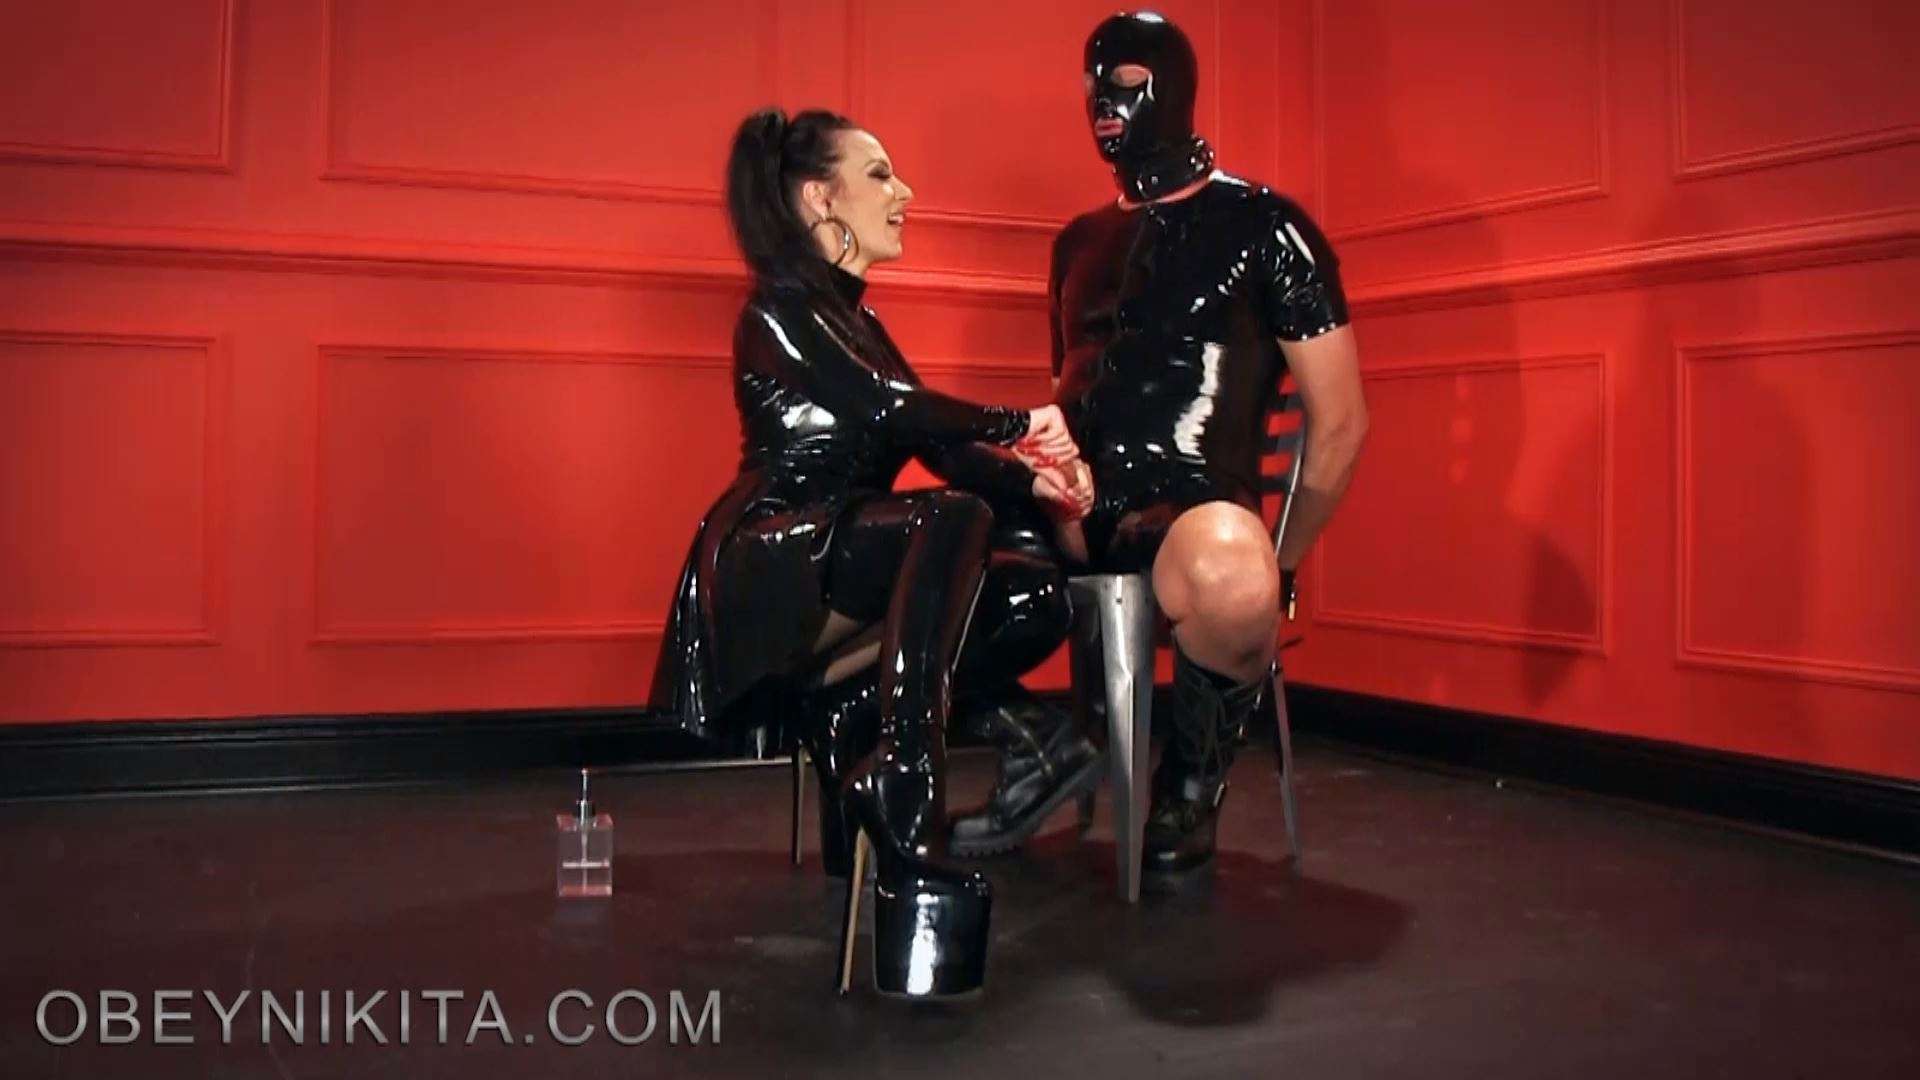 RUINED FOR MY AMUSEMENT. FEATURING: MISTRESS NIKITA - OBEYNIKITA - FULL HD/1080p/MP4